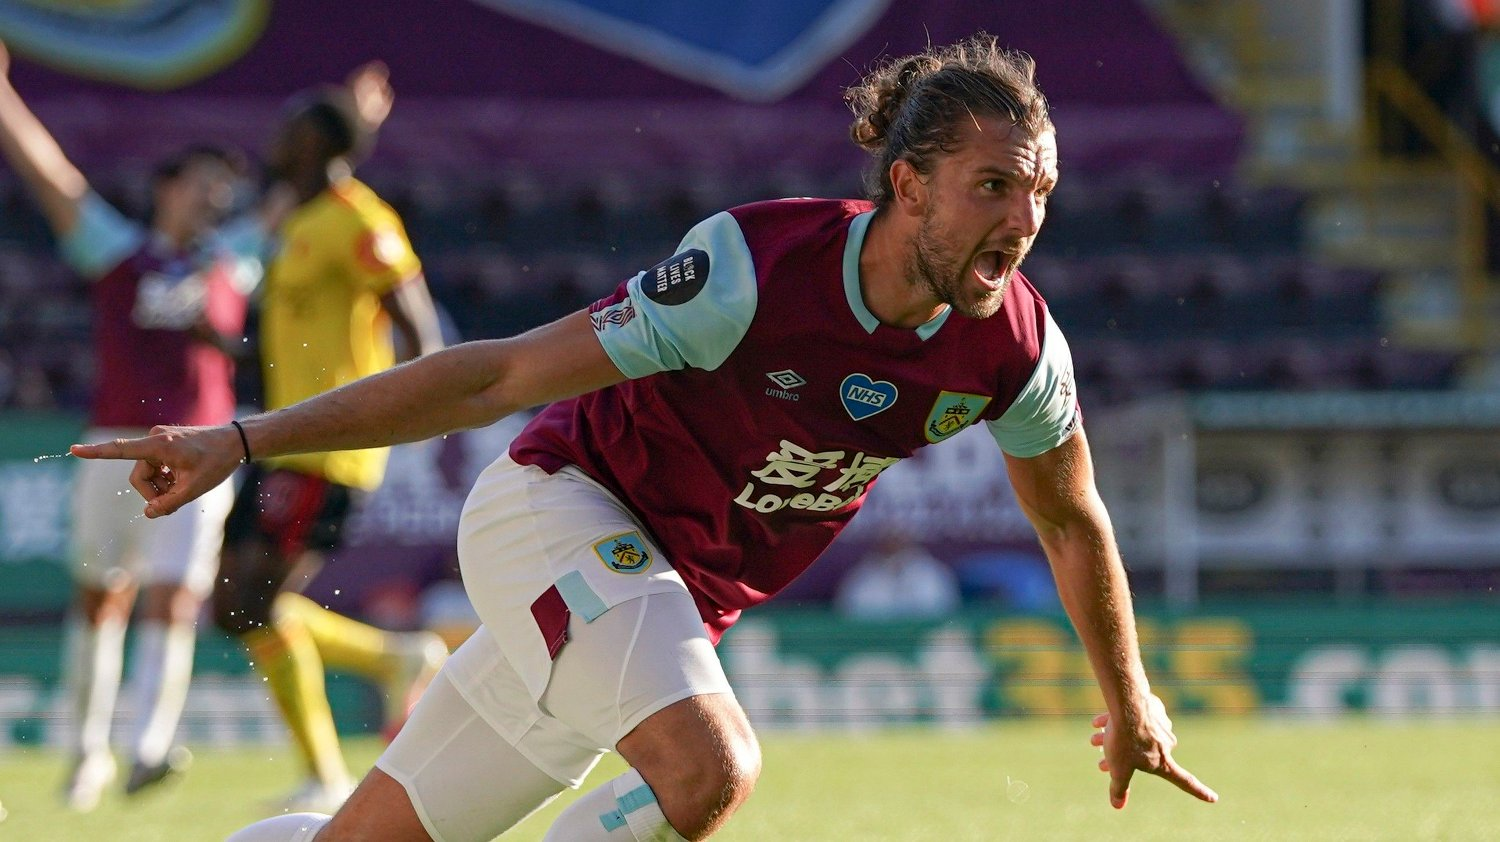 Burnley's Jay Rodriguez celebrates after scoring his side's first goal during the English Premier League soccer match between Burnley and Watford at the Turf Moor Stadium in Burnley, Thursday, June 25, 2020.